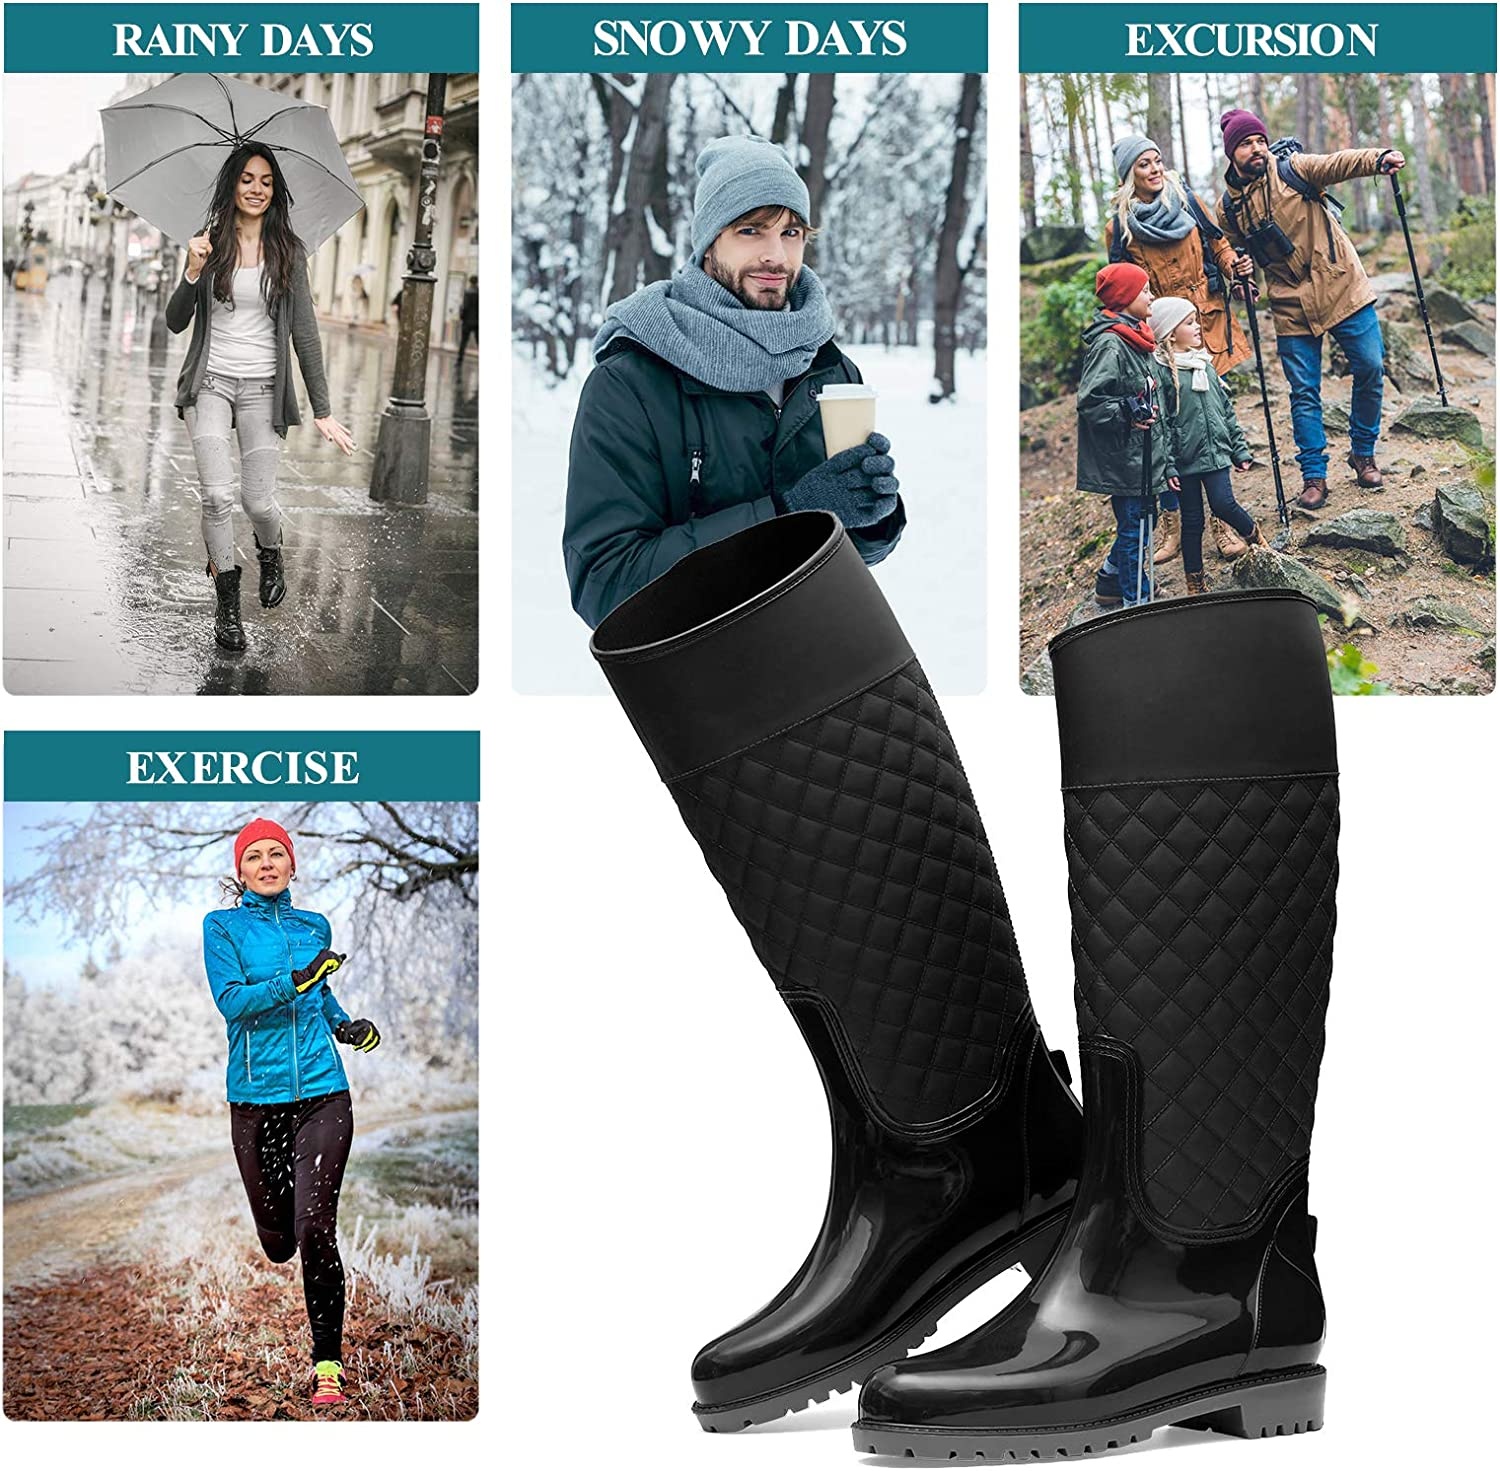 gracosy Rain Boots for Womens Waterproof Wellington Boots Ladies Tall Wellies Rain Shoes Garden Shoes for Outdoor Fashion Comfort Slip on Flat Rubber Shoes Anti Slip Walking Rain Shoes Size